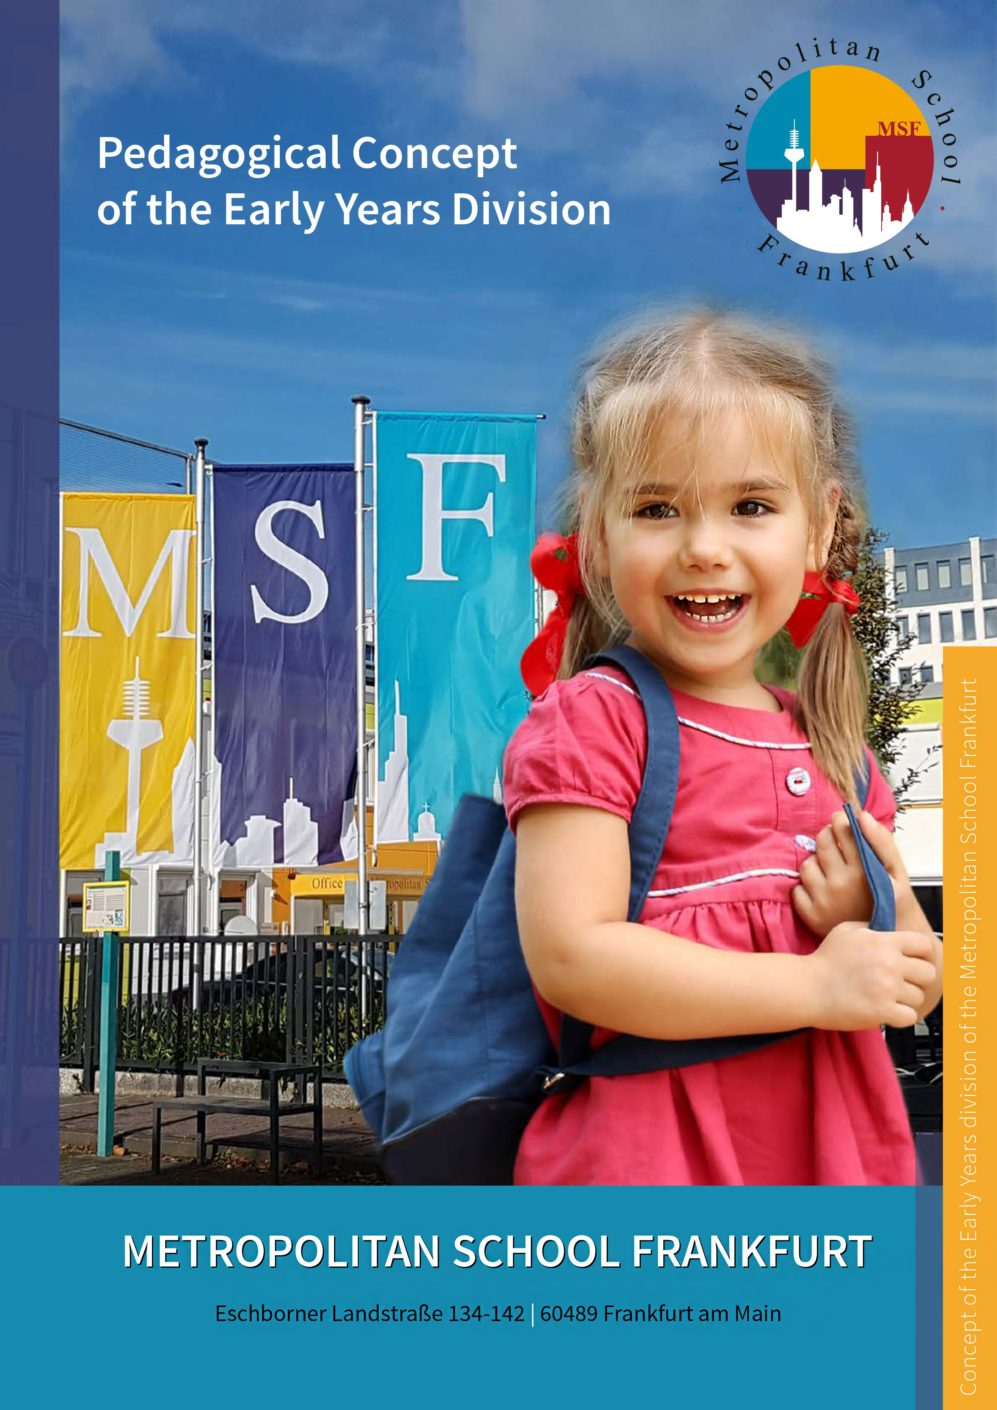 Pedagogical Concept of the Early Years Division